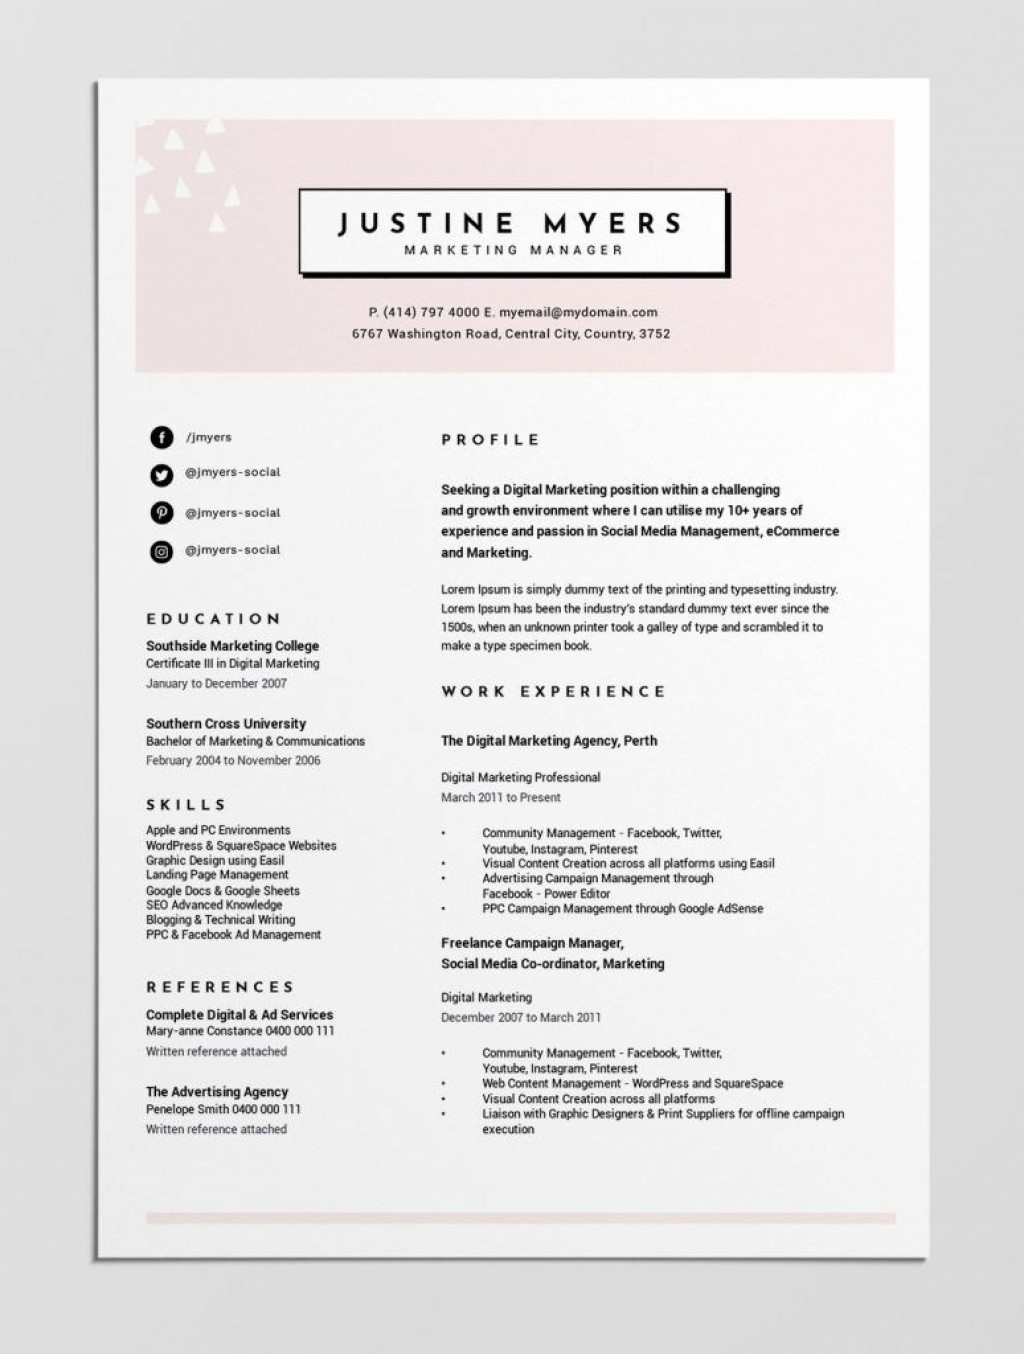 004 Beautiful Make A Resume Template Free Example  How To Write Create Format WritingLarge